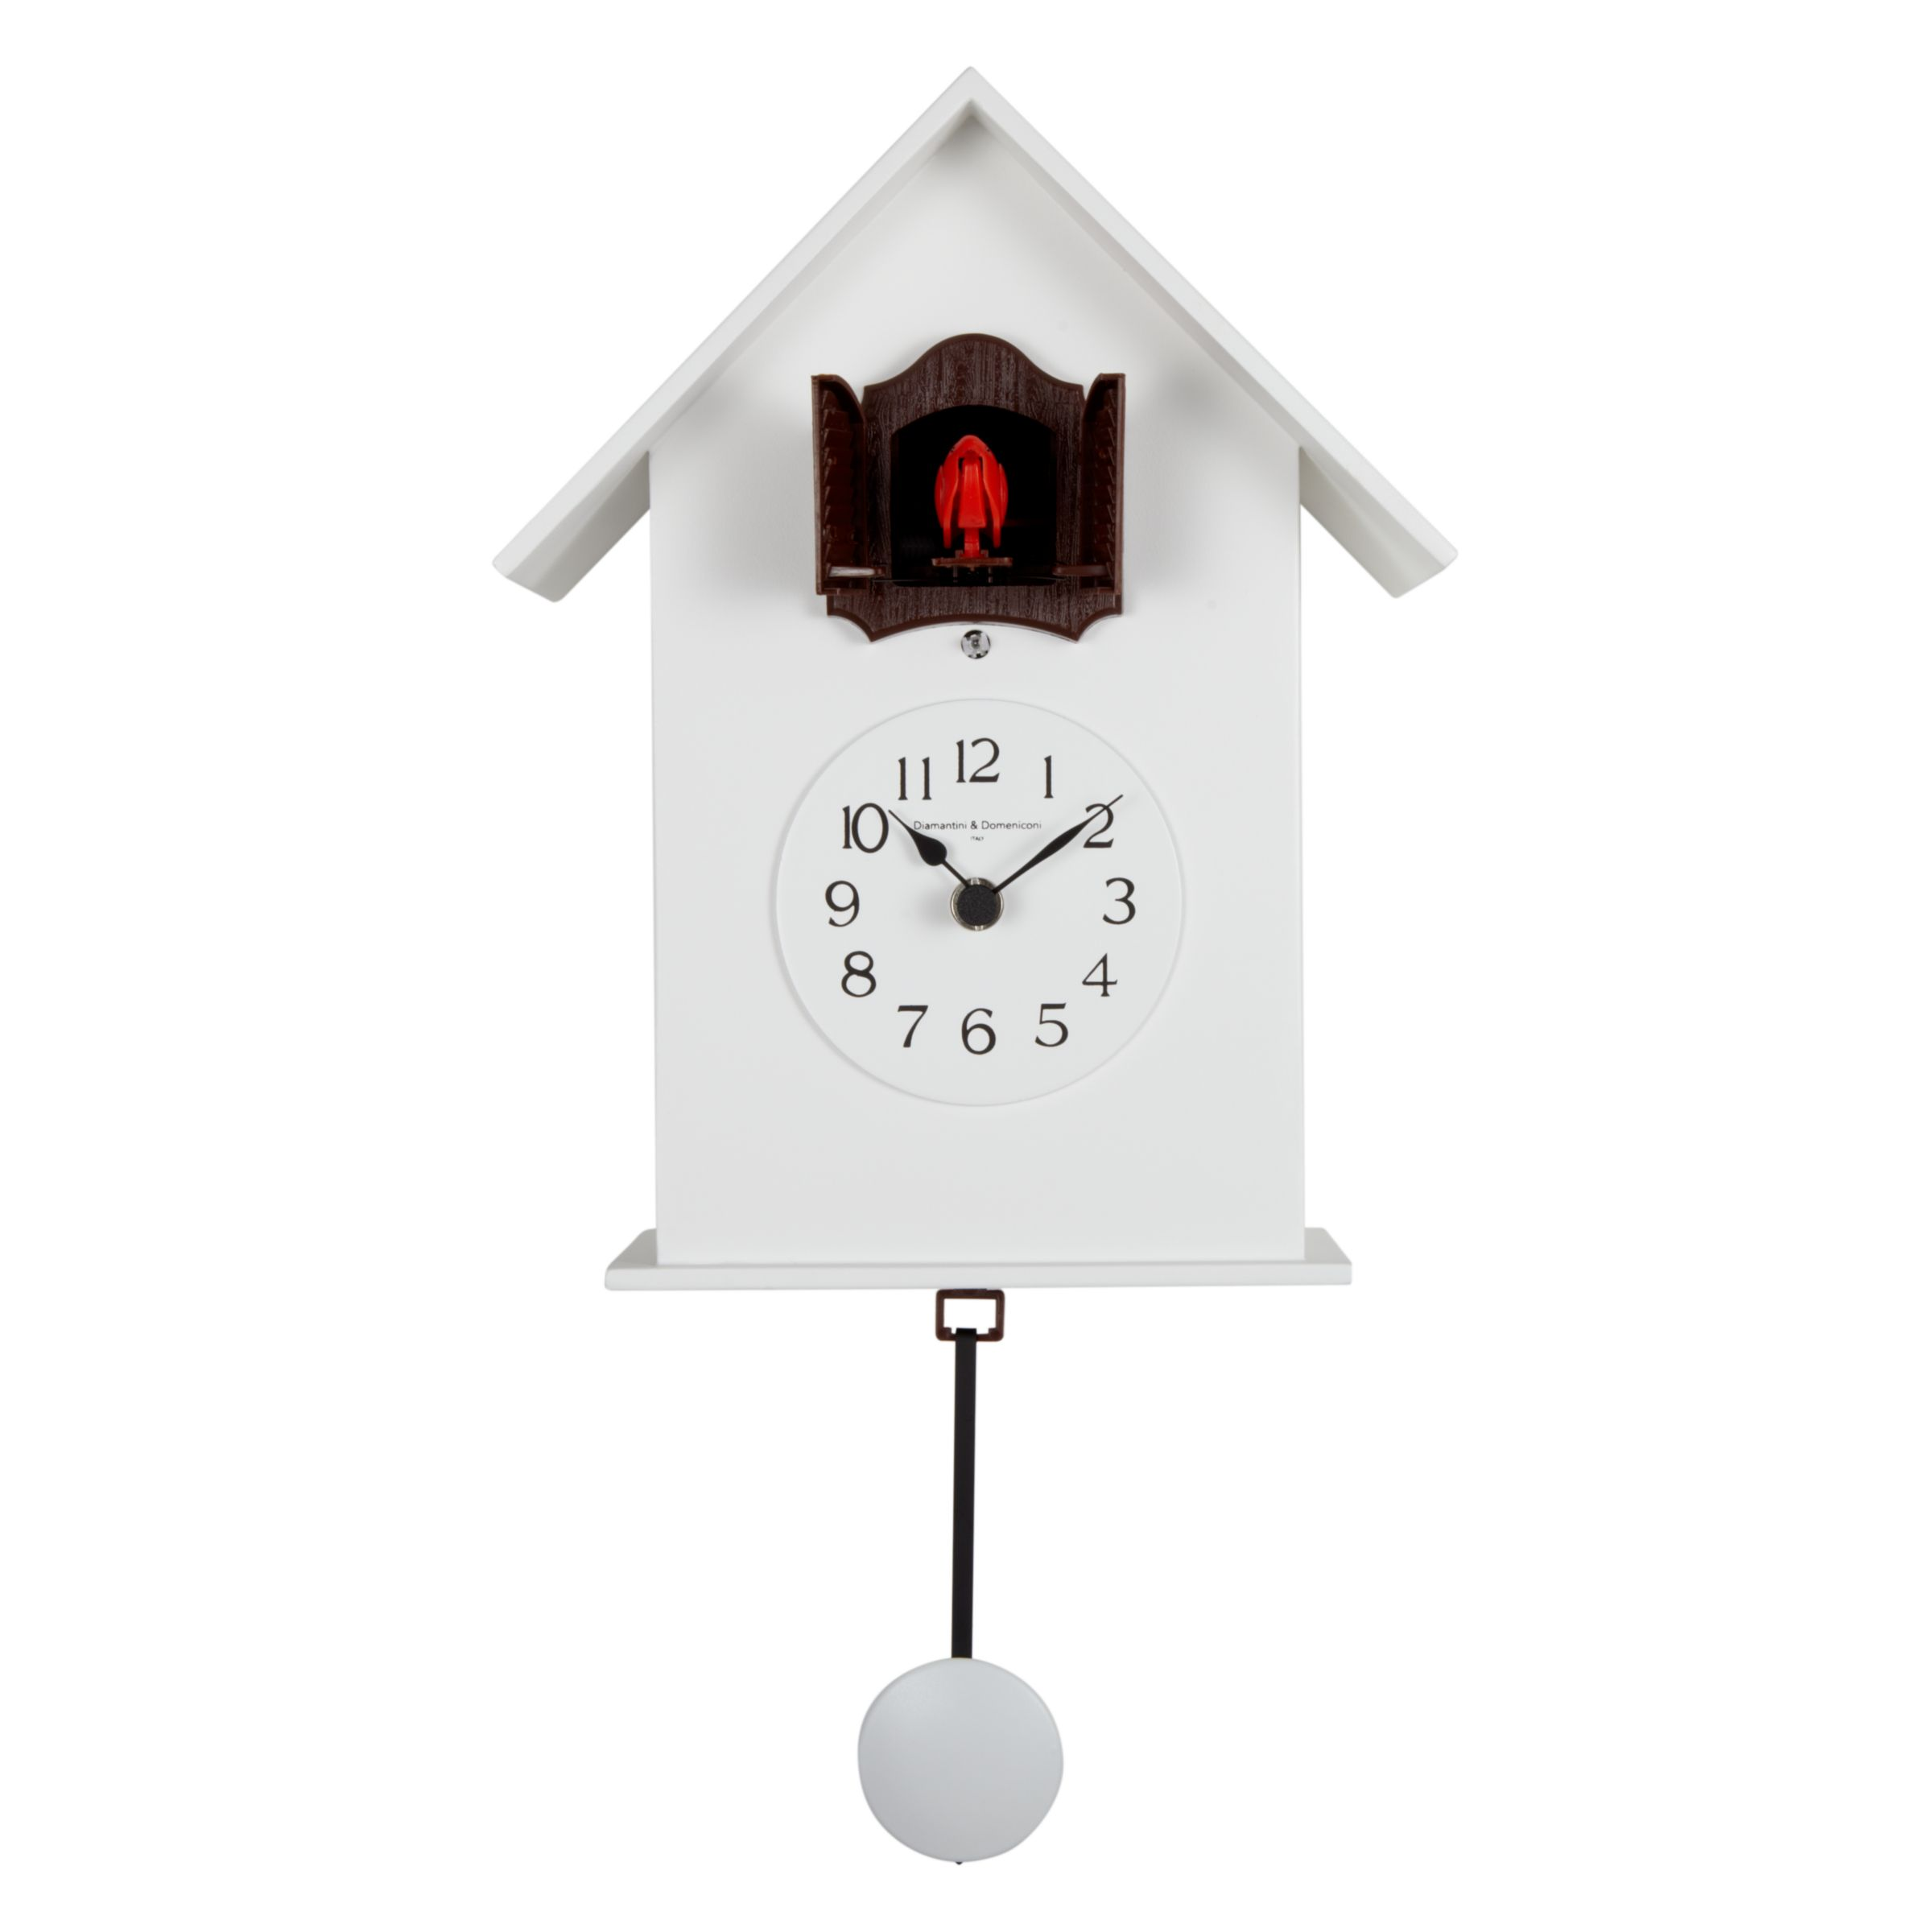 Diamantini & Domeniconi Diamantini & Domeniconi Meridiana Cucu Wall Clock, White, Dia.18cm